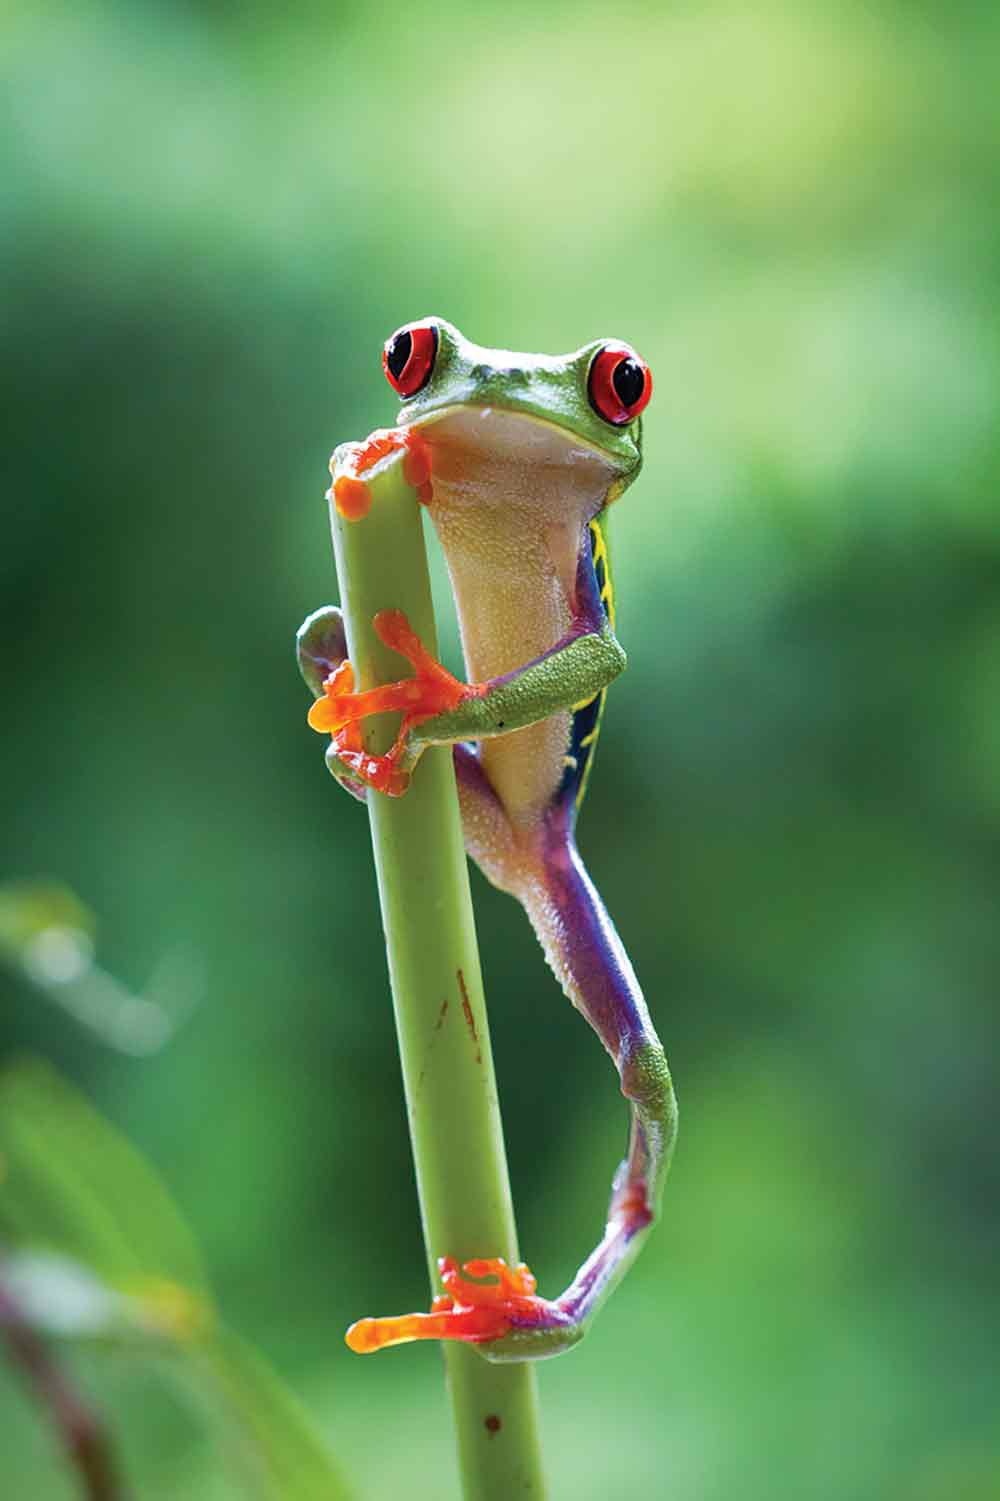 A red-eyed tree frog in Costa Rica from the Jungles programme.